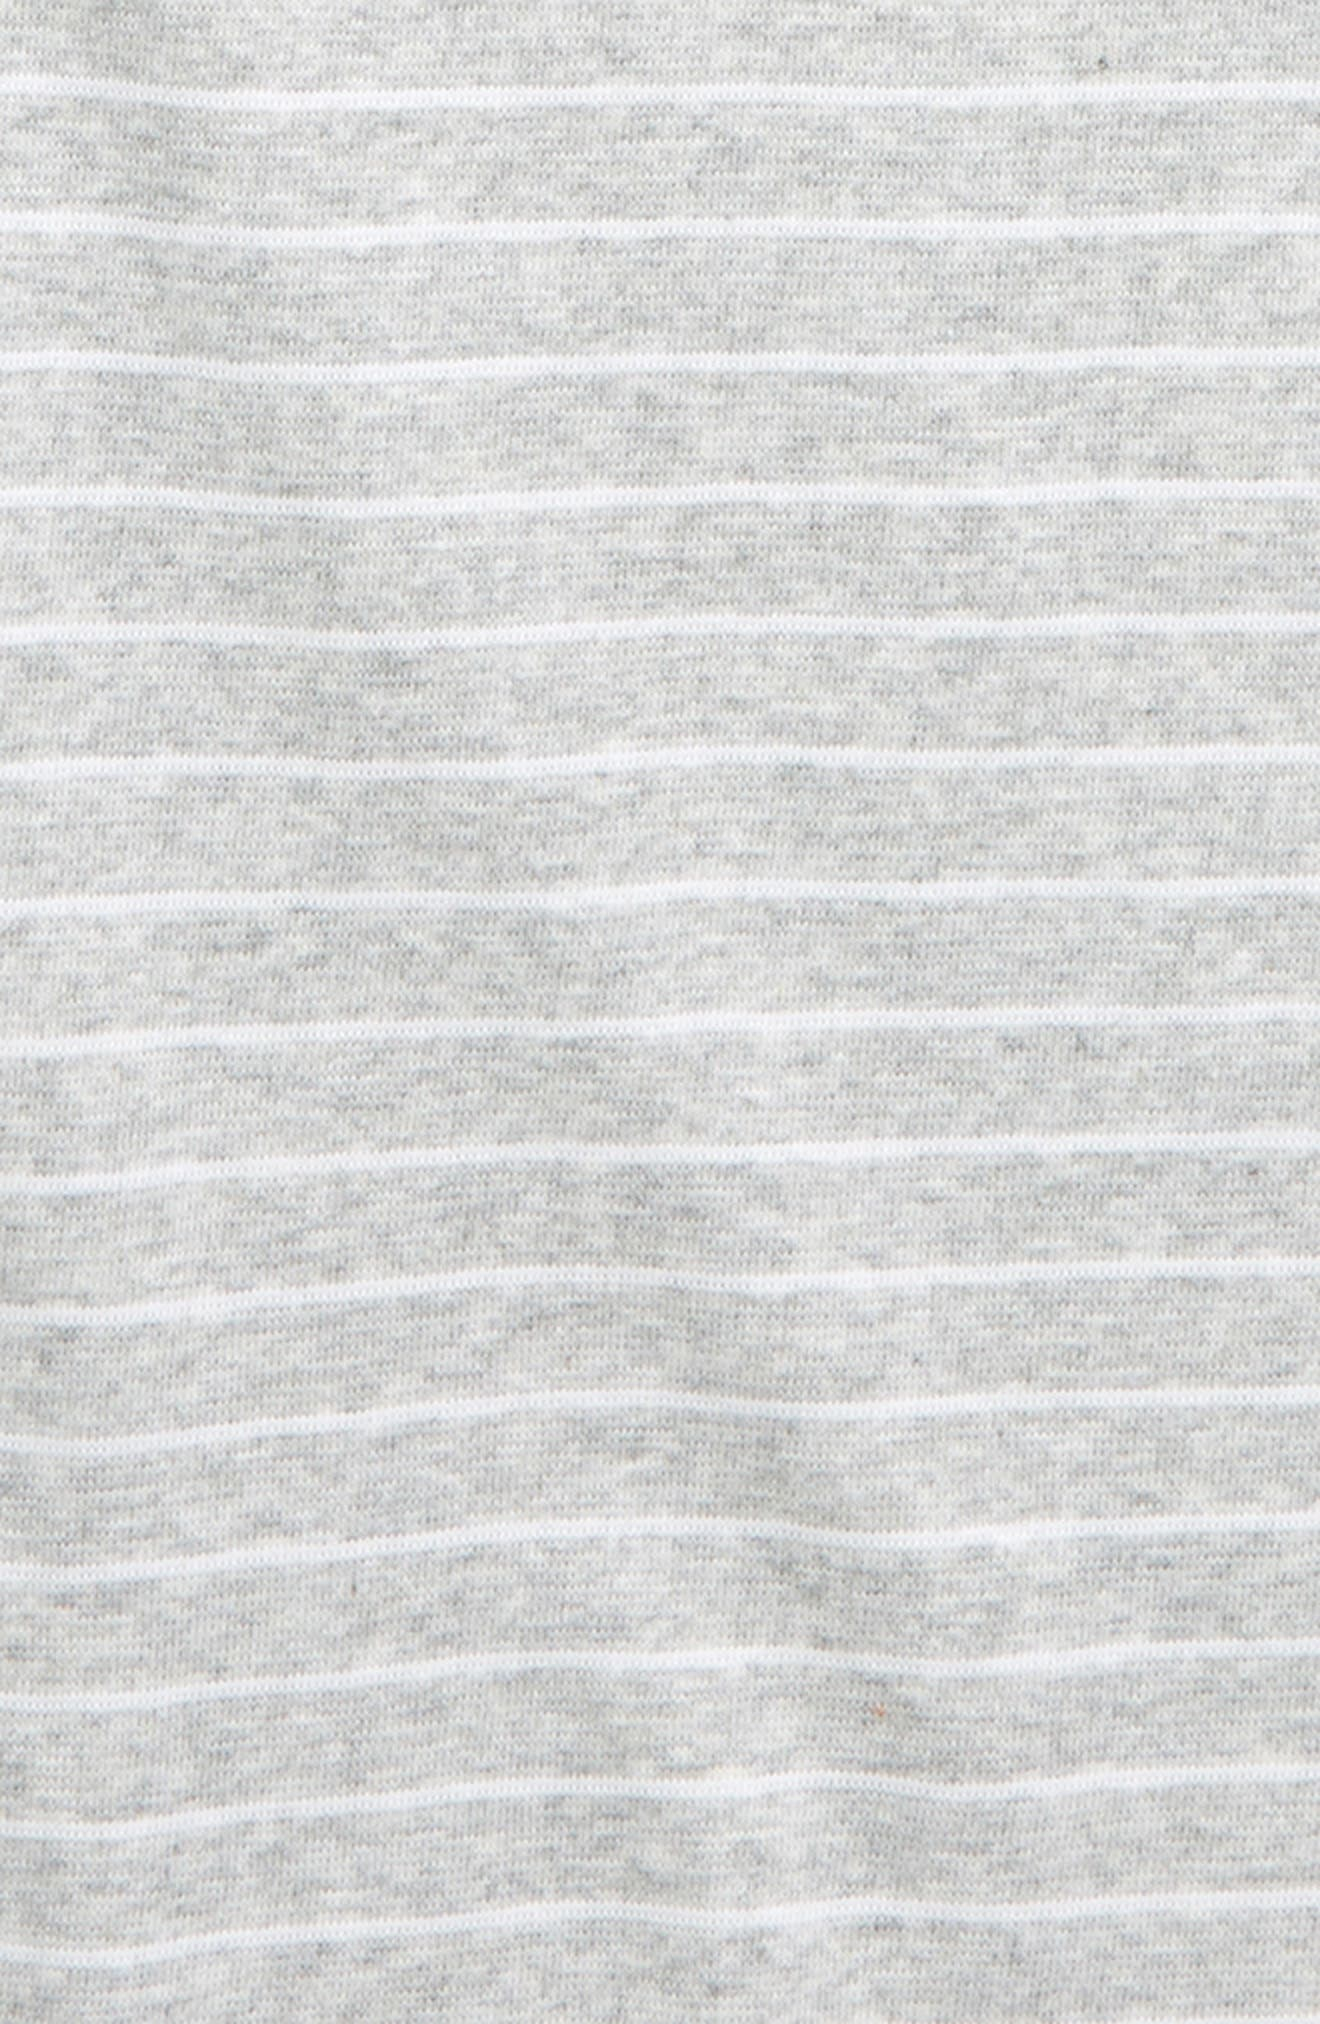 TREASURE & BOND, Stripe Tee, Alternate thumbnail 2, color, GREY ASH HEATHER- WHITE STRIPE